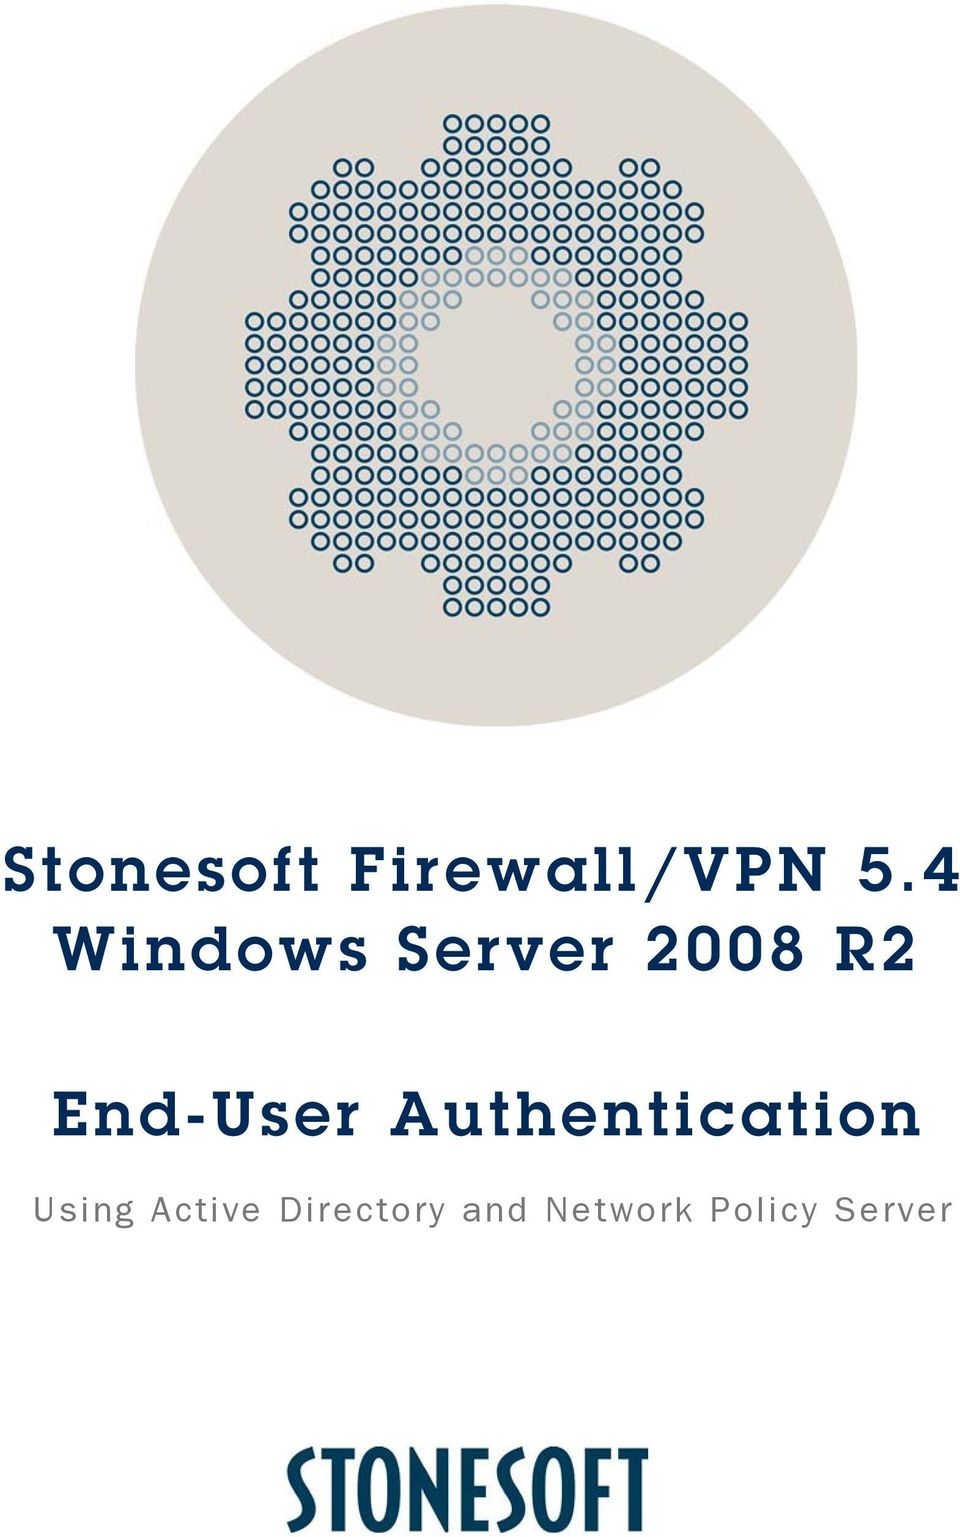 End-User Authentication Using